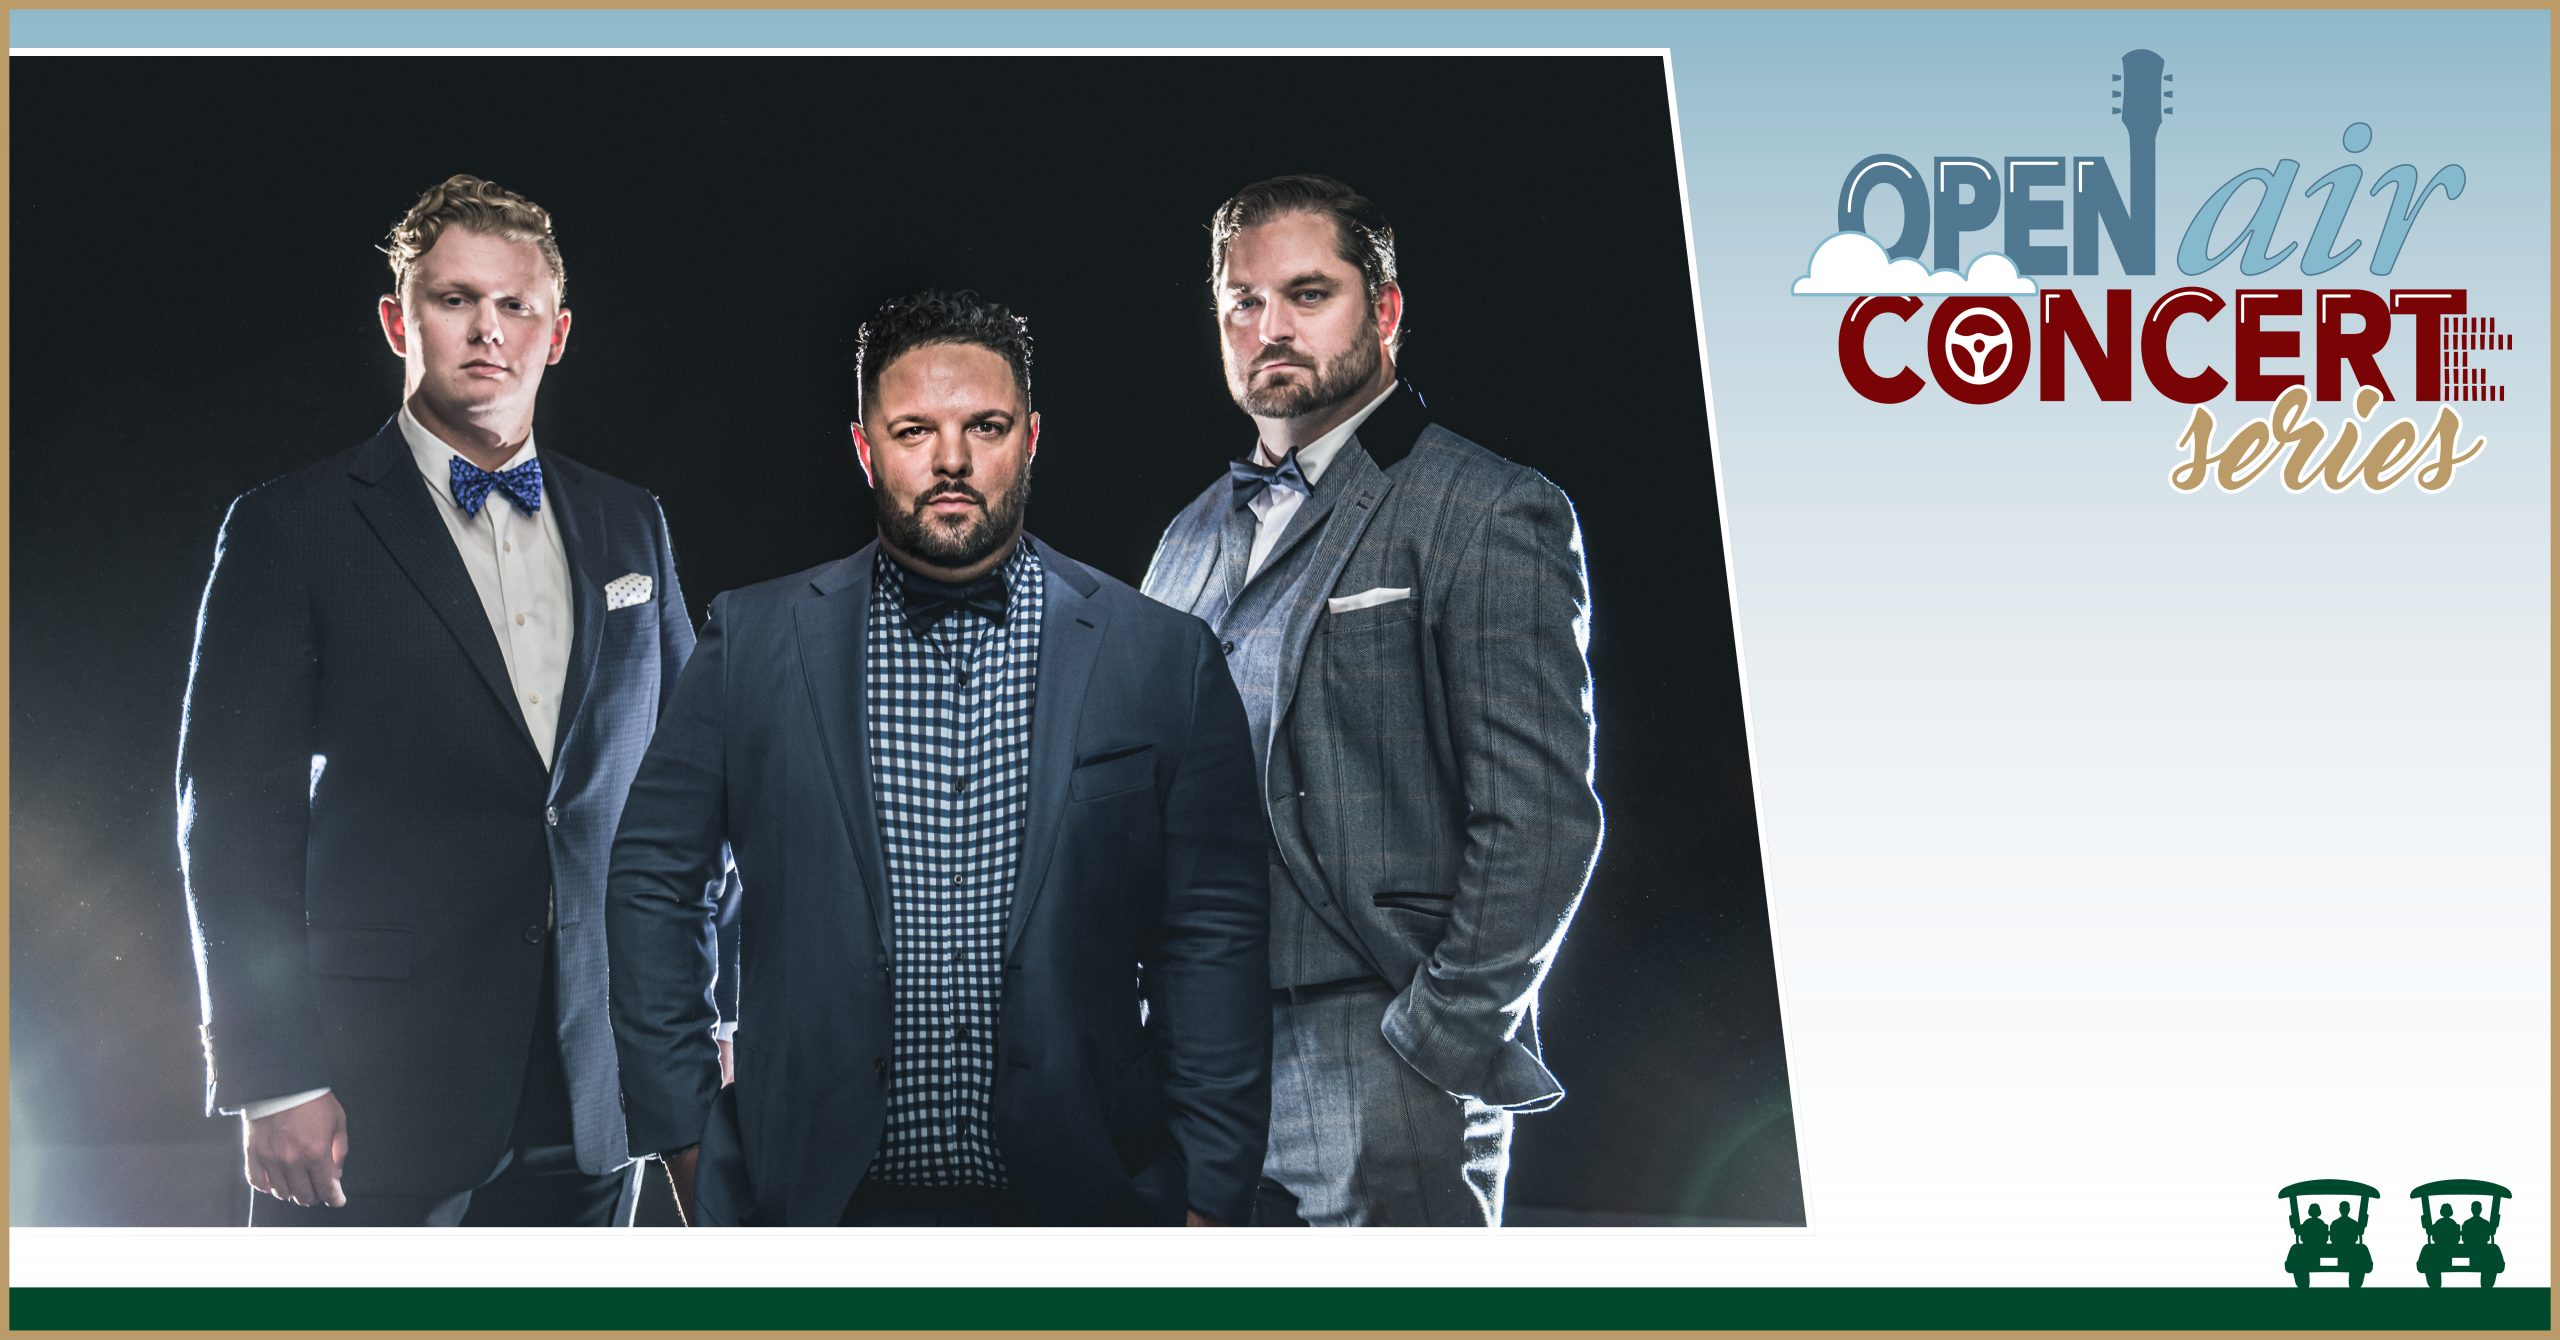 The Open Air Concert Series – The Christmas Tenors